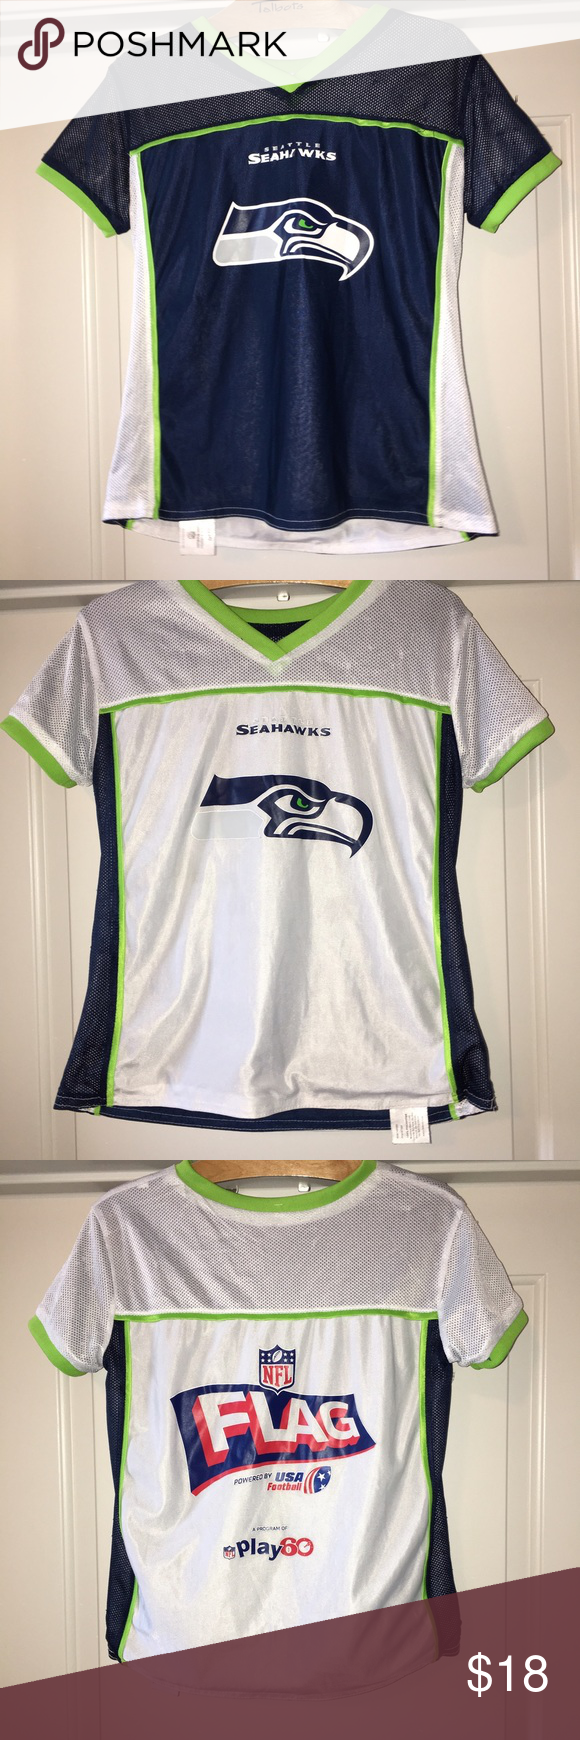 Youth Seattle Seahawks Reversible Flag Football Thank You For